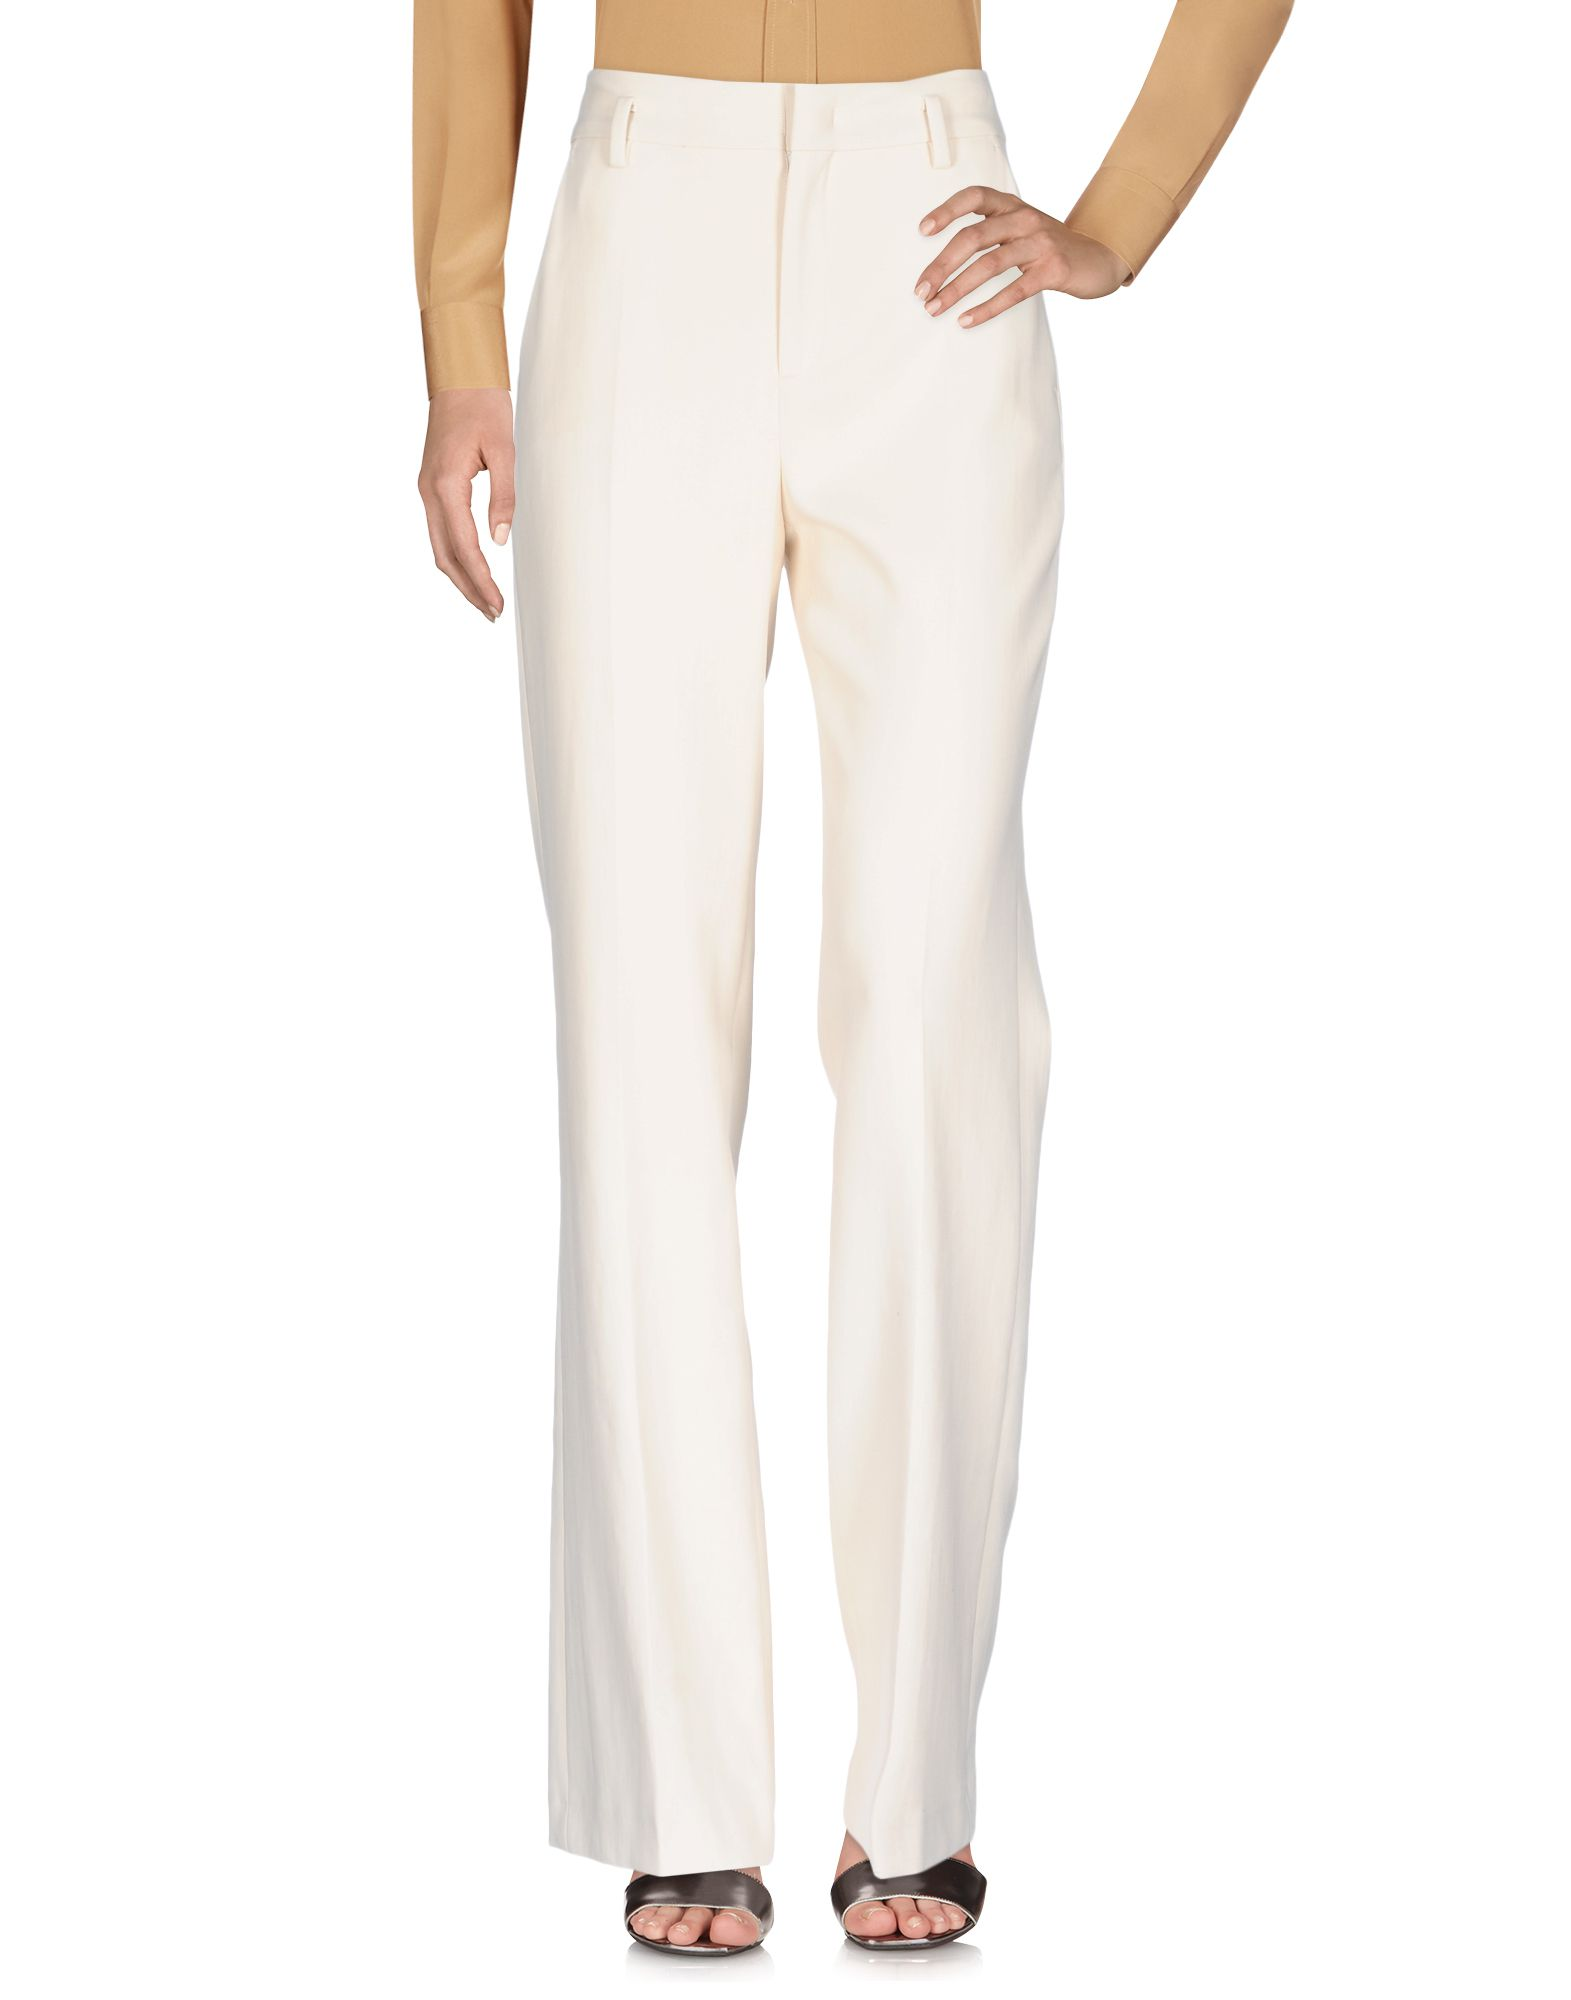 STILLS Casual Pants in Ivory